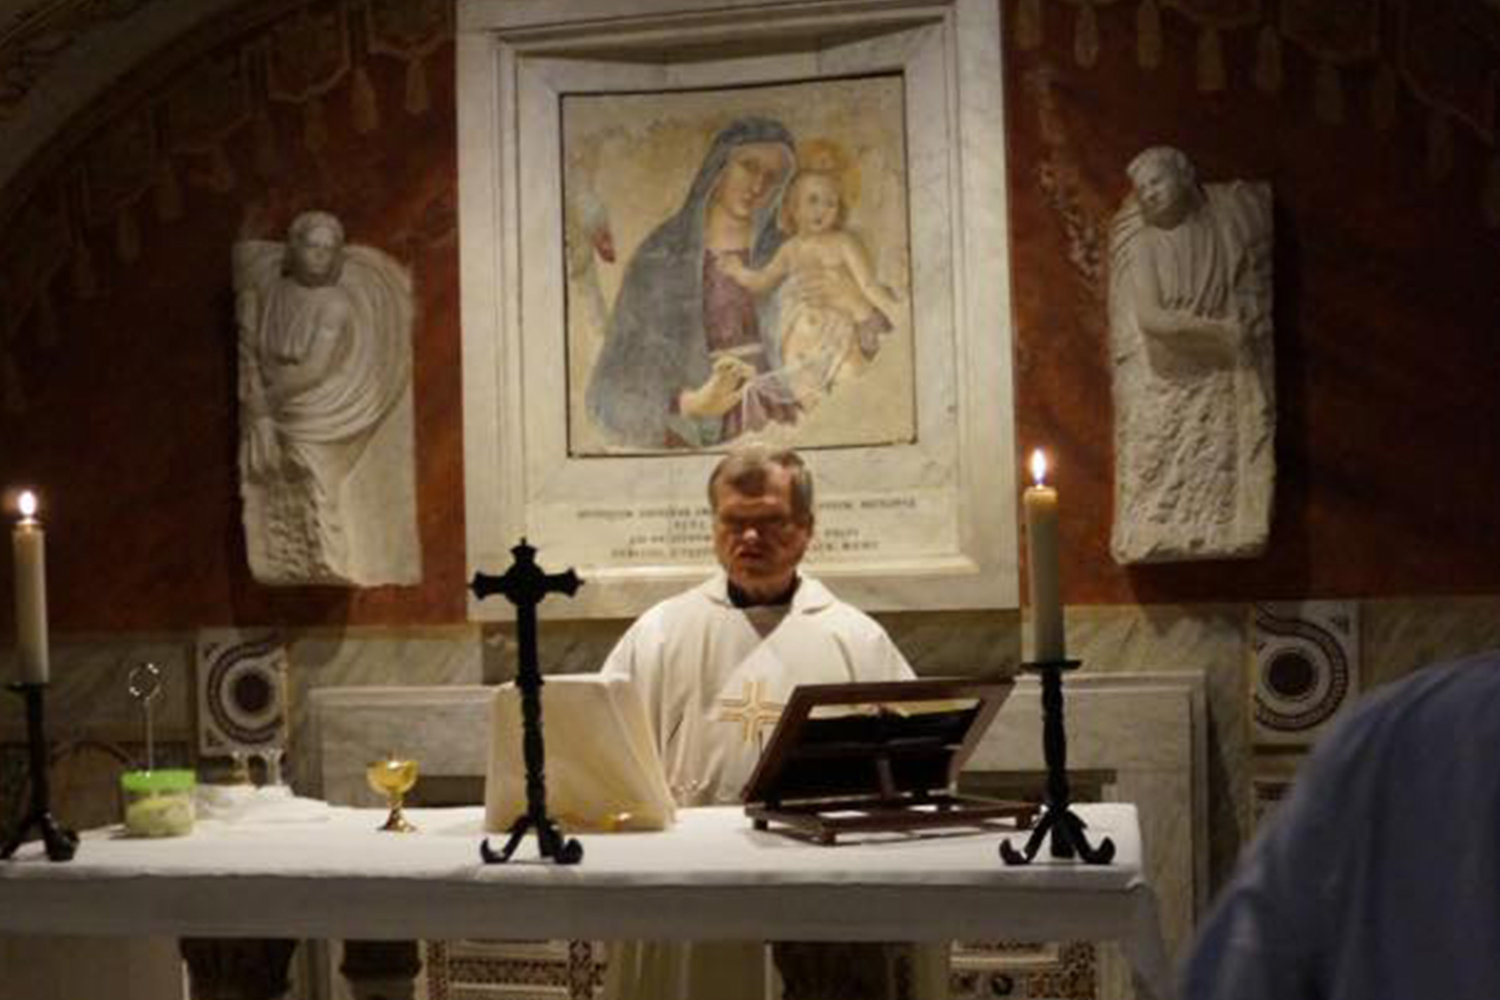 Father Mike Quinn offers Mass in a chapel of St. Peter's Baslica in Rome in this Nov. 23, 2016, file photo.